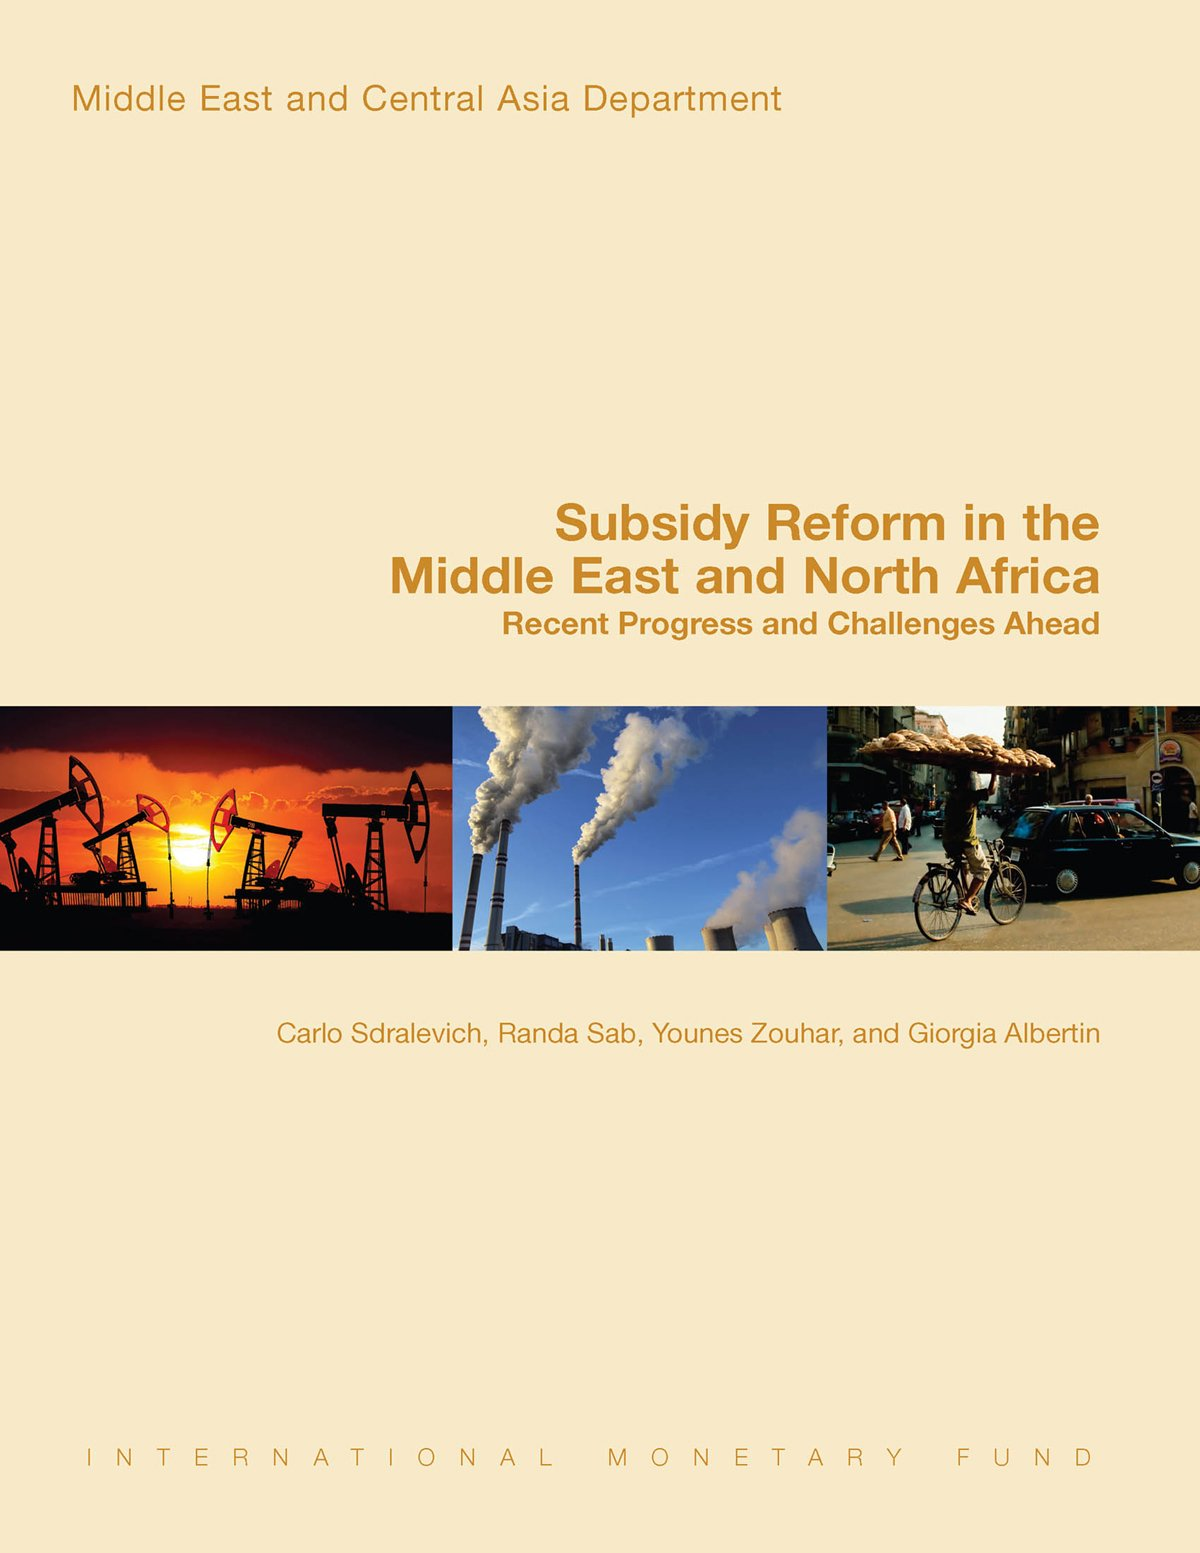 Subsidy Reform in the Middle East and North Africa: Recent Progress and Challenges Ahead (Middle East and Central Asia Department)